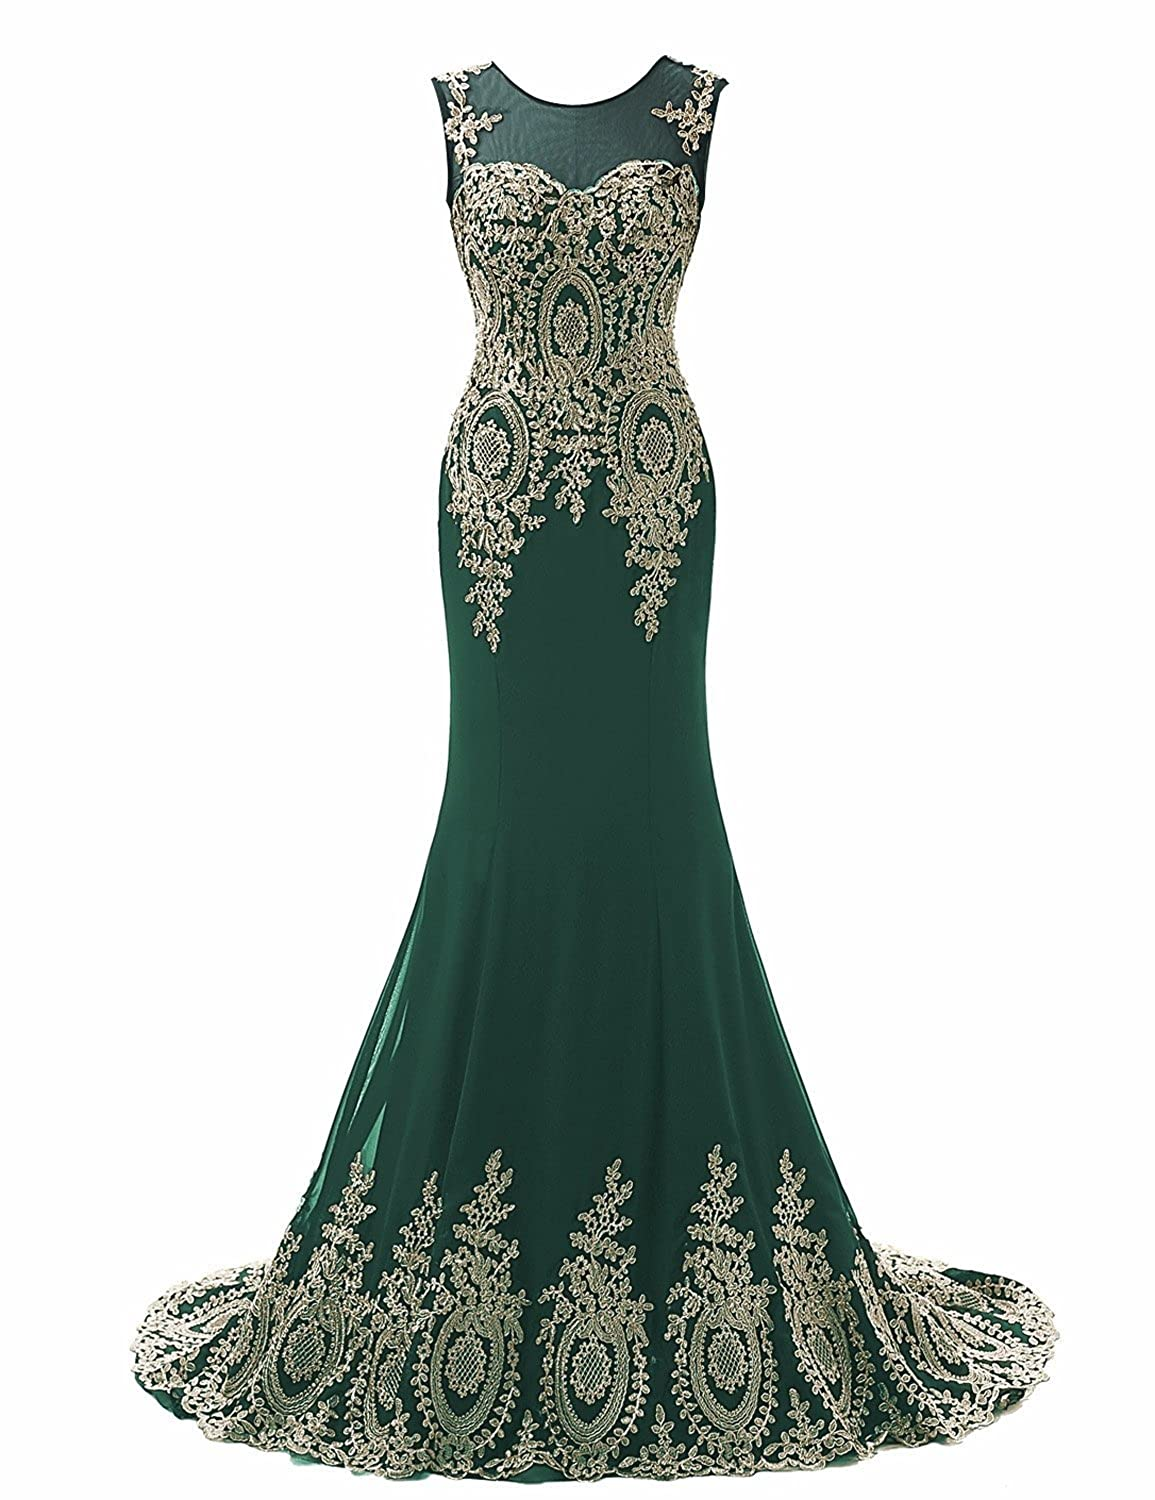 Special Bridal Womens Scoop-Neck Graphic Sleeveless Long Gown Dress Dark Green Customize